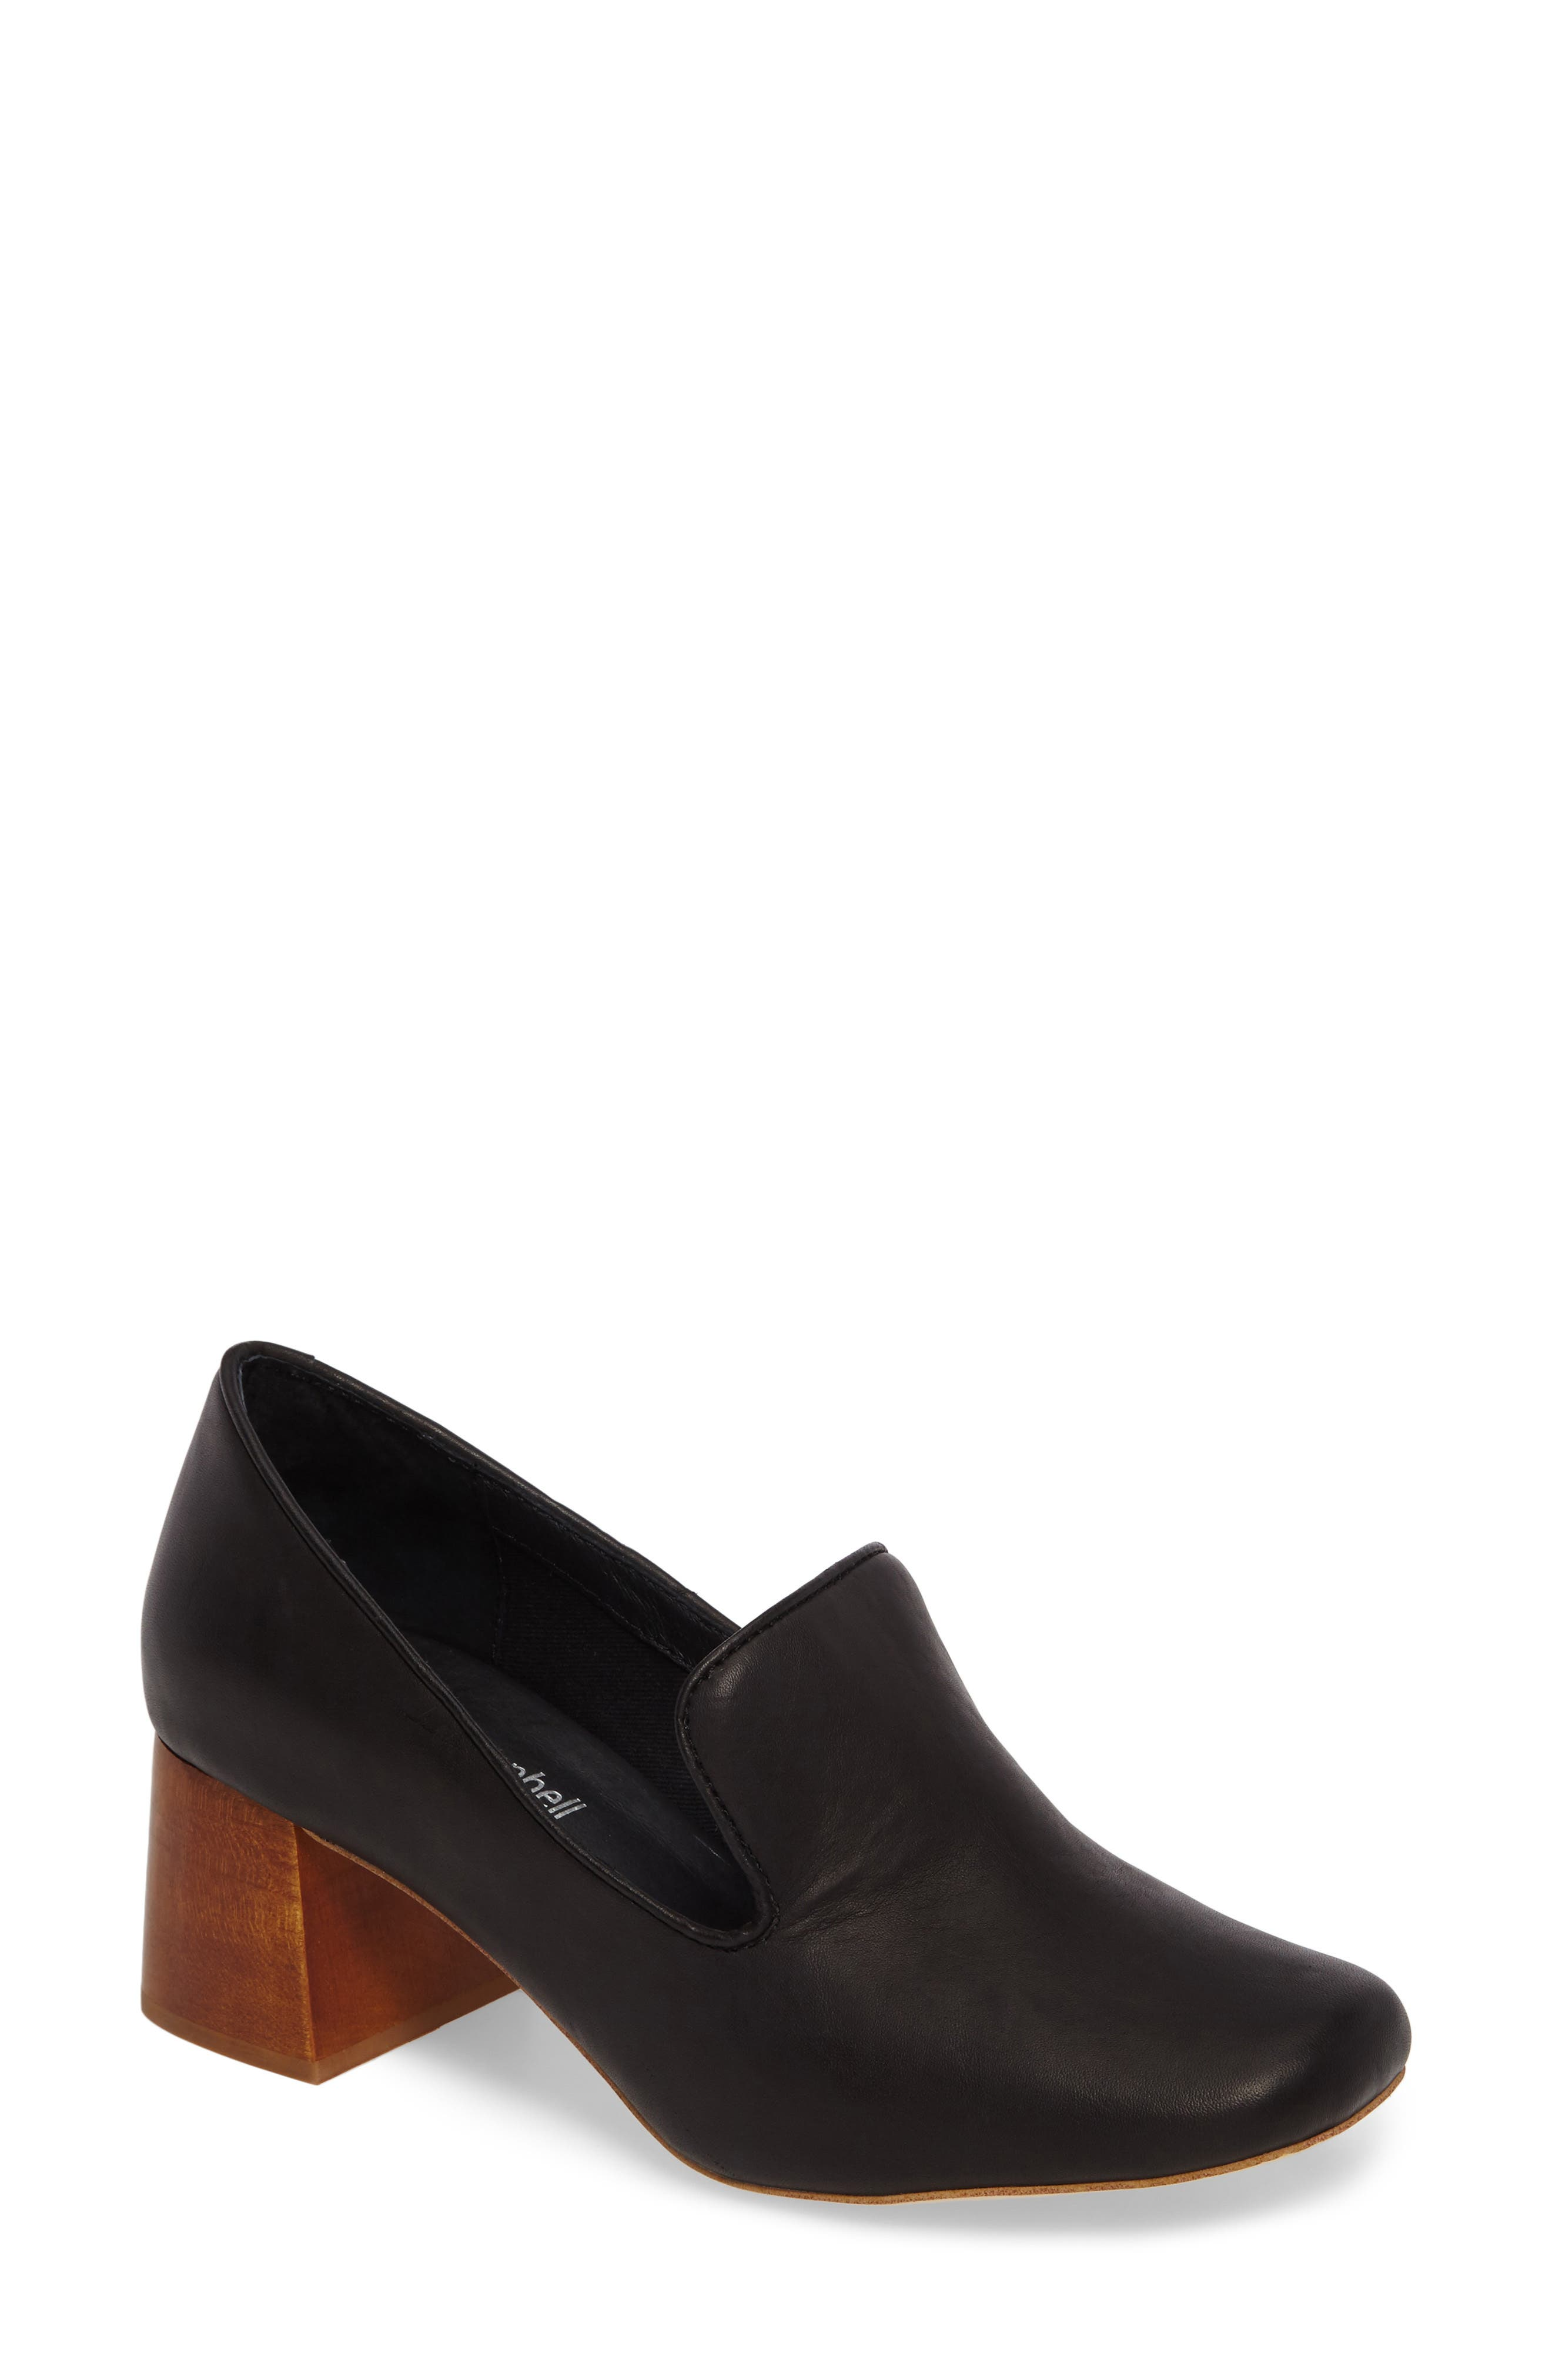 Main Image - Jeffrey Campbell Lister Flared Heel Loafer Pump (Women)